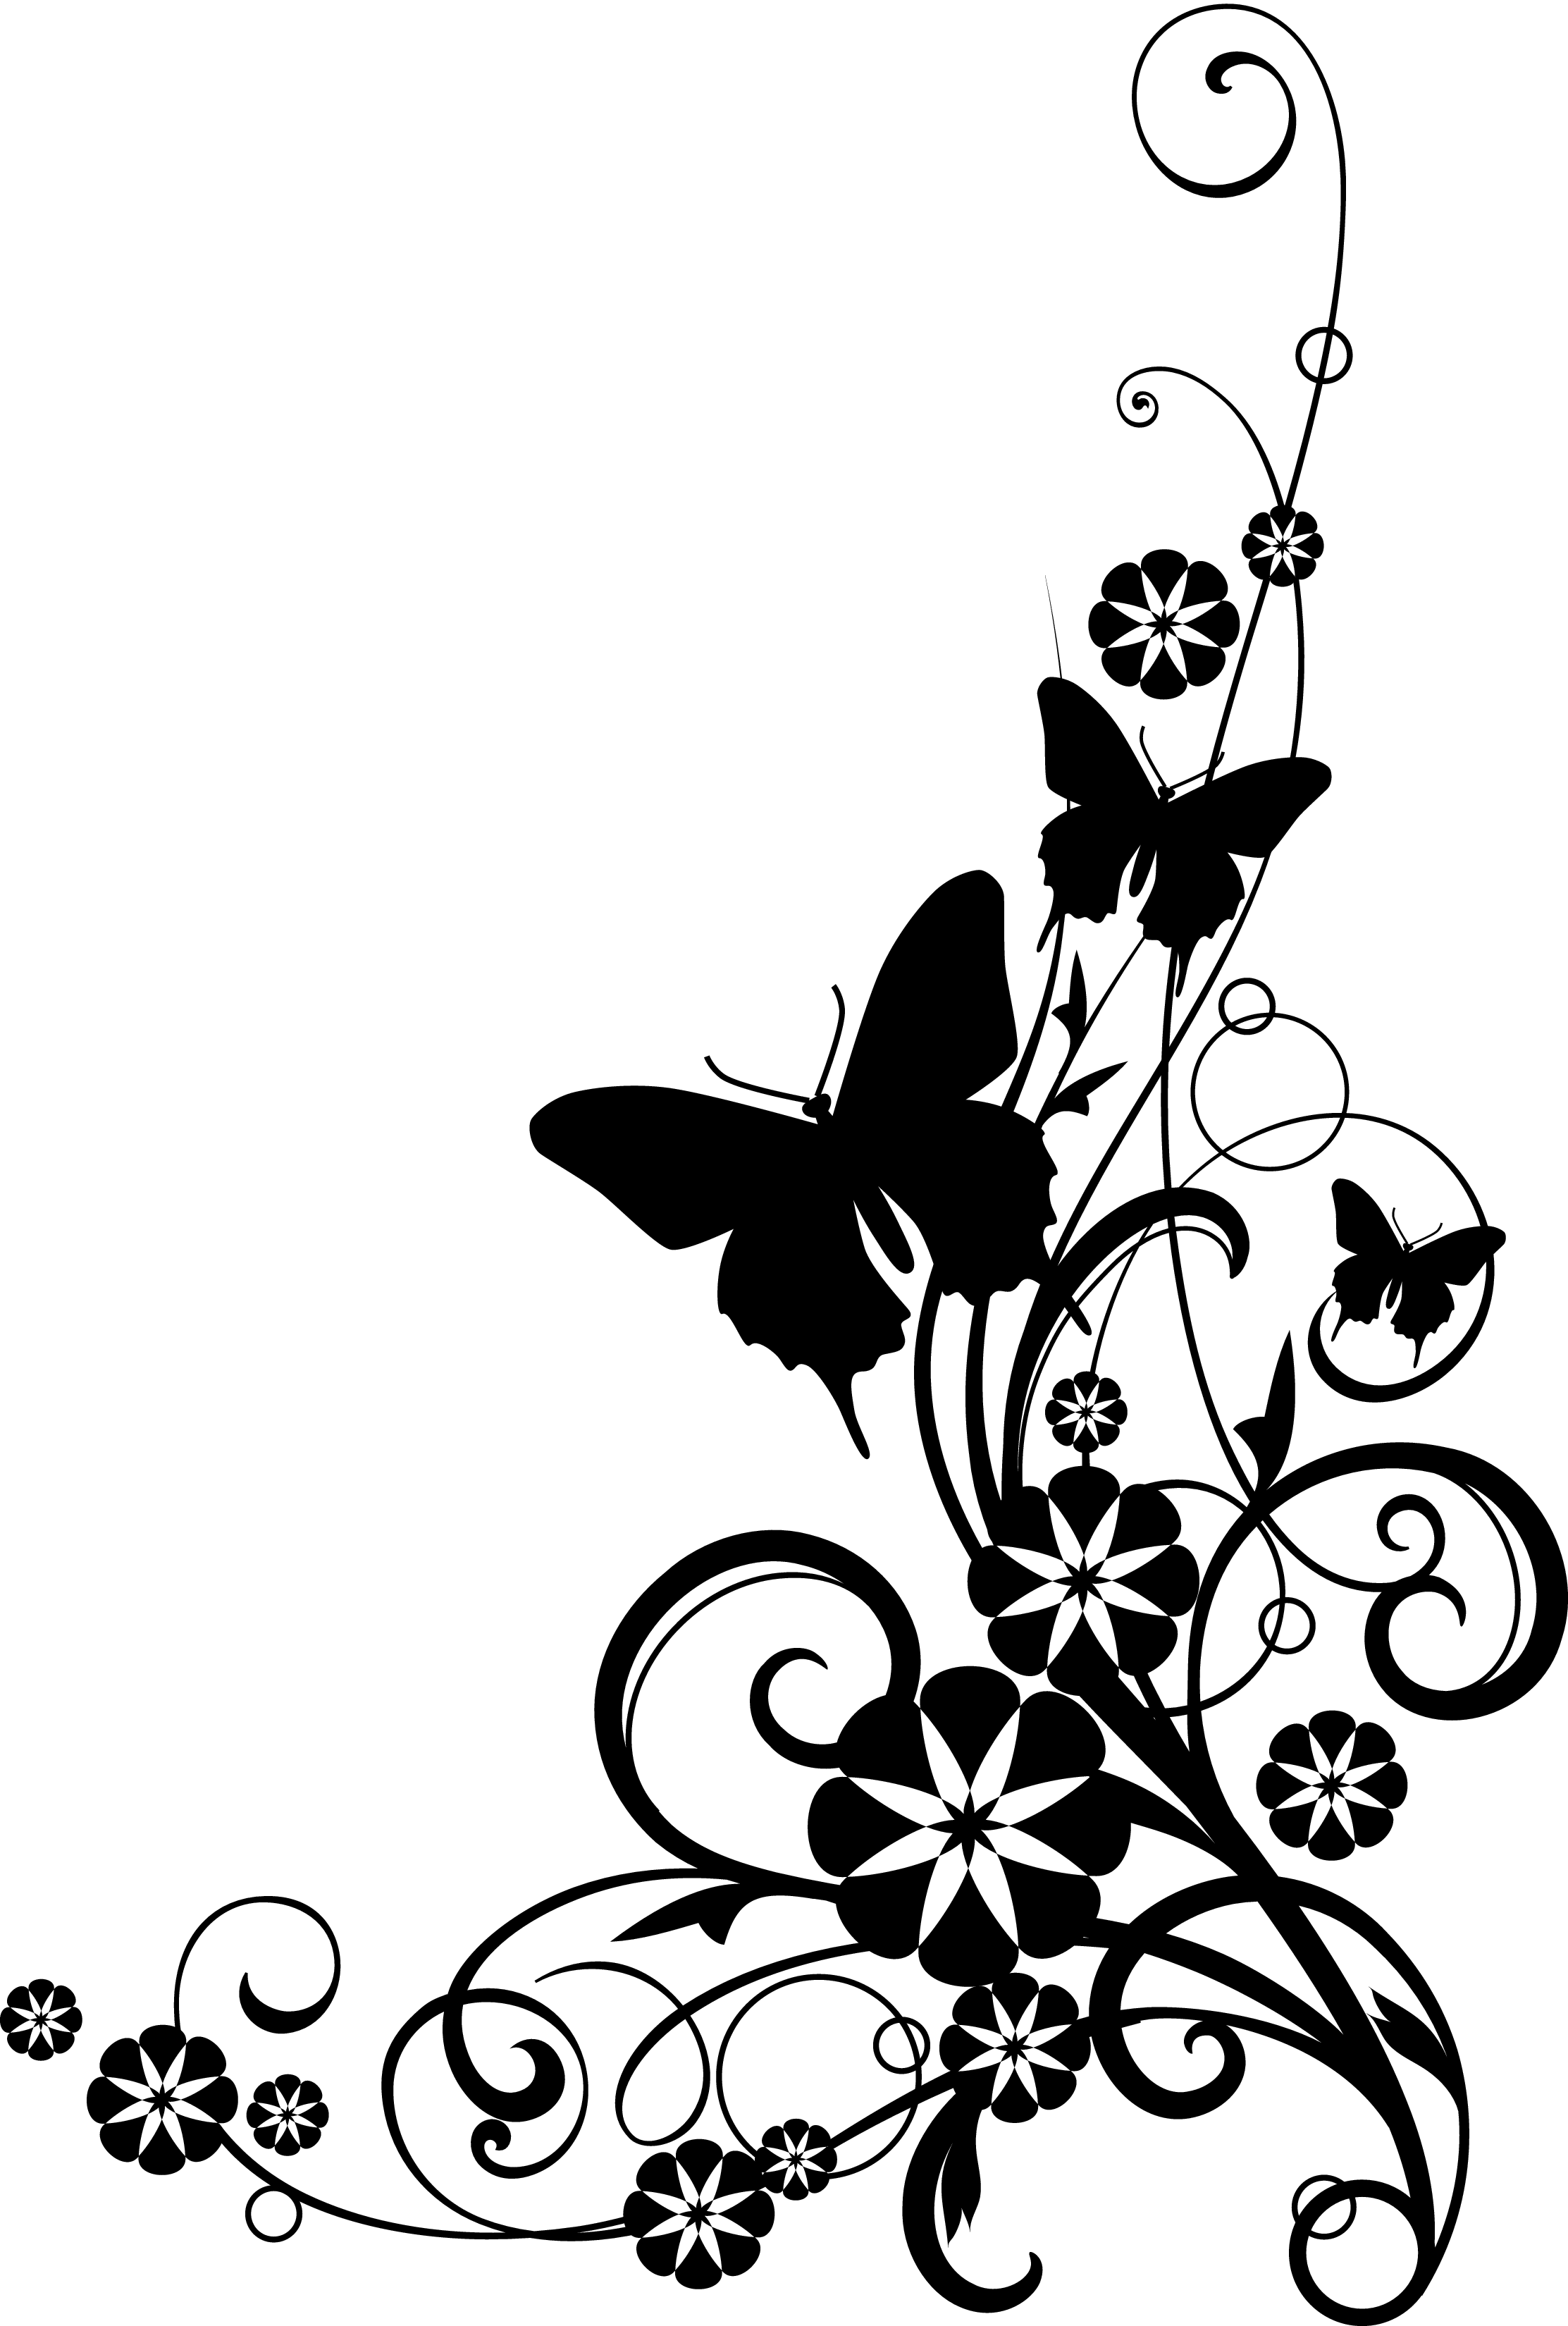 Flower Border Clipart Black And White | Clipart Panda - Free ...